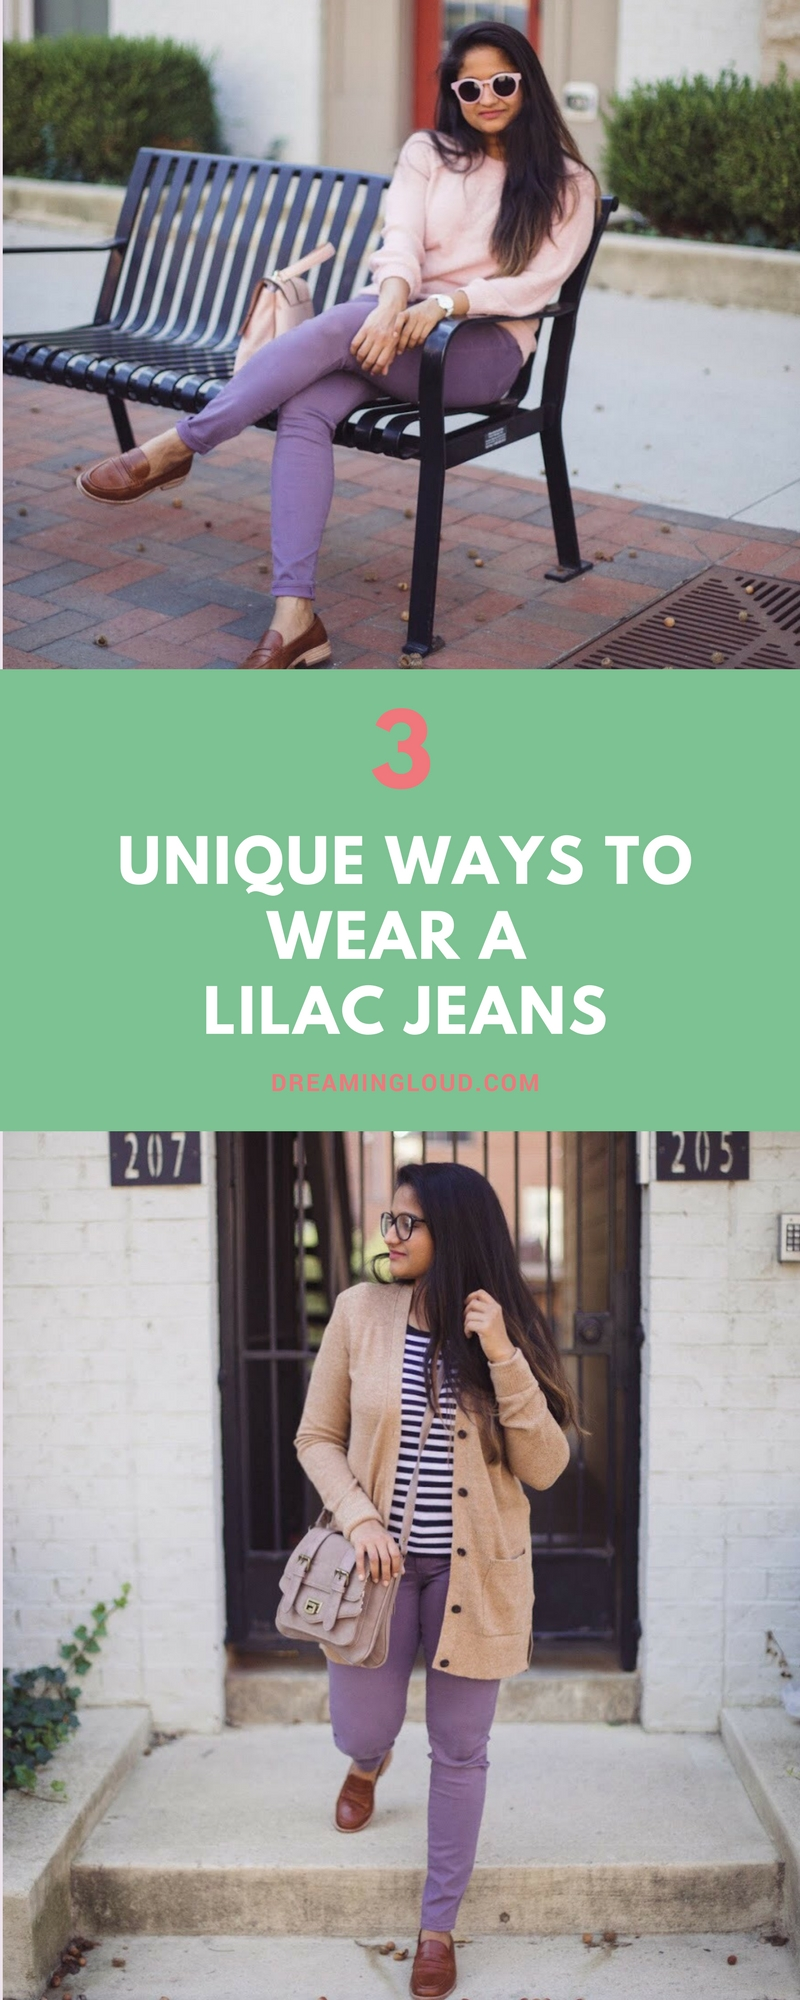 Lifestyle blogger Surekha of Dreaming Loud sharing 3 unique ways to wear lilac jeans | How to Wear Purple Jeans: 3 Unique Ways featured by popular Ohio modest fashion blogger, Dreaming Loud